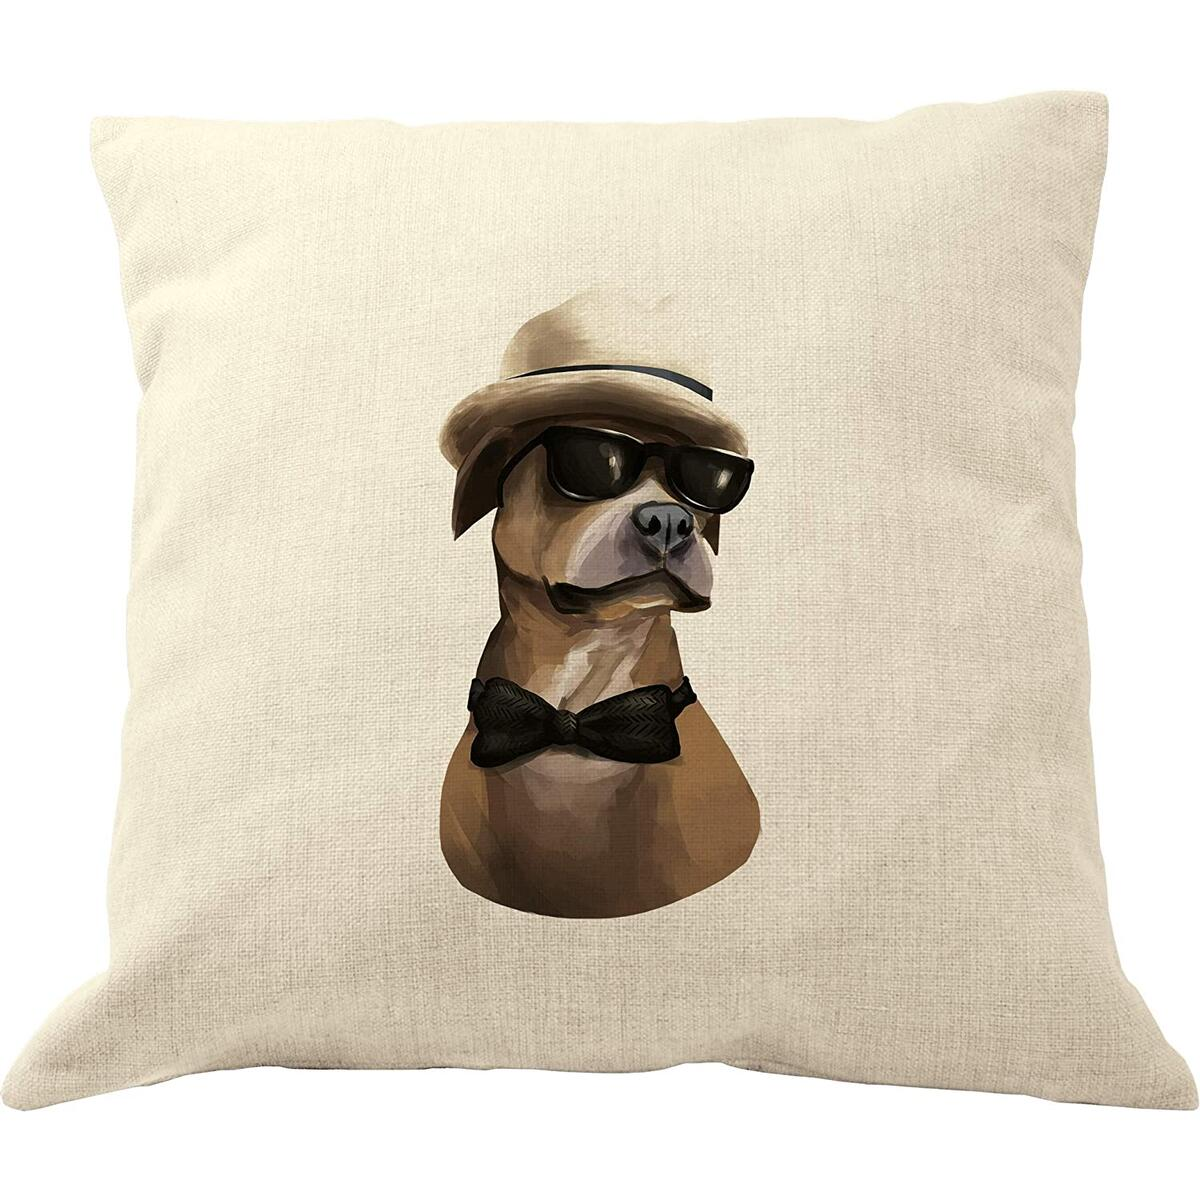 DrupsCo 18x18 Pitbull Throw Pillow Case, Cotton Linen Decorative Pitbull Throw Pillow Cover